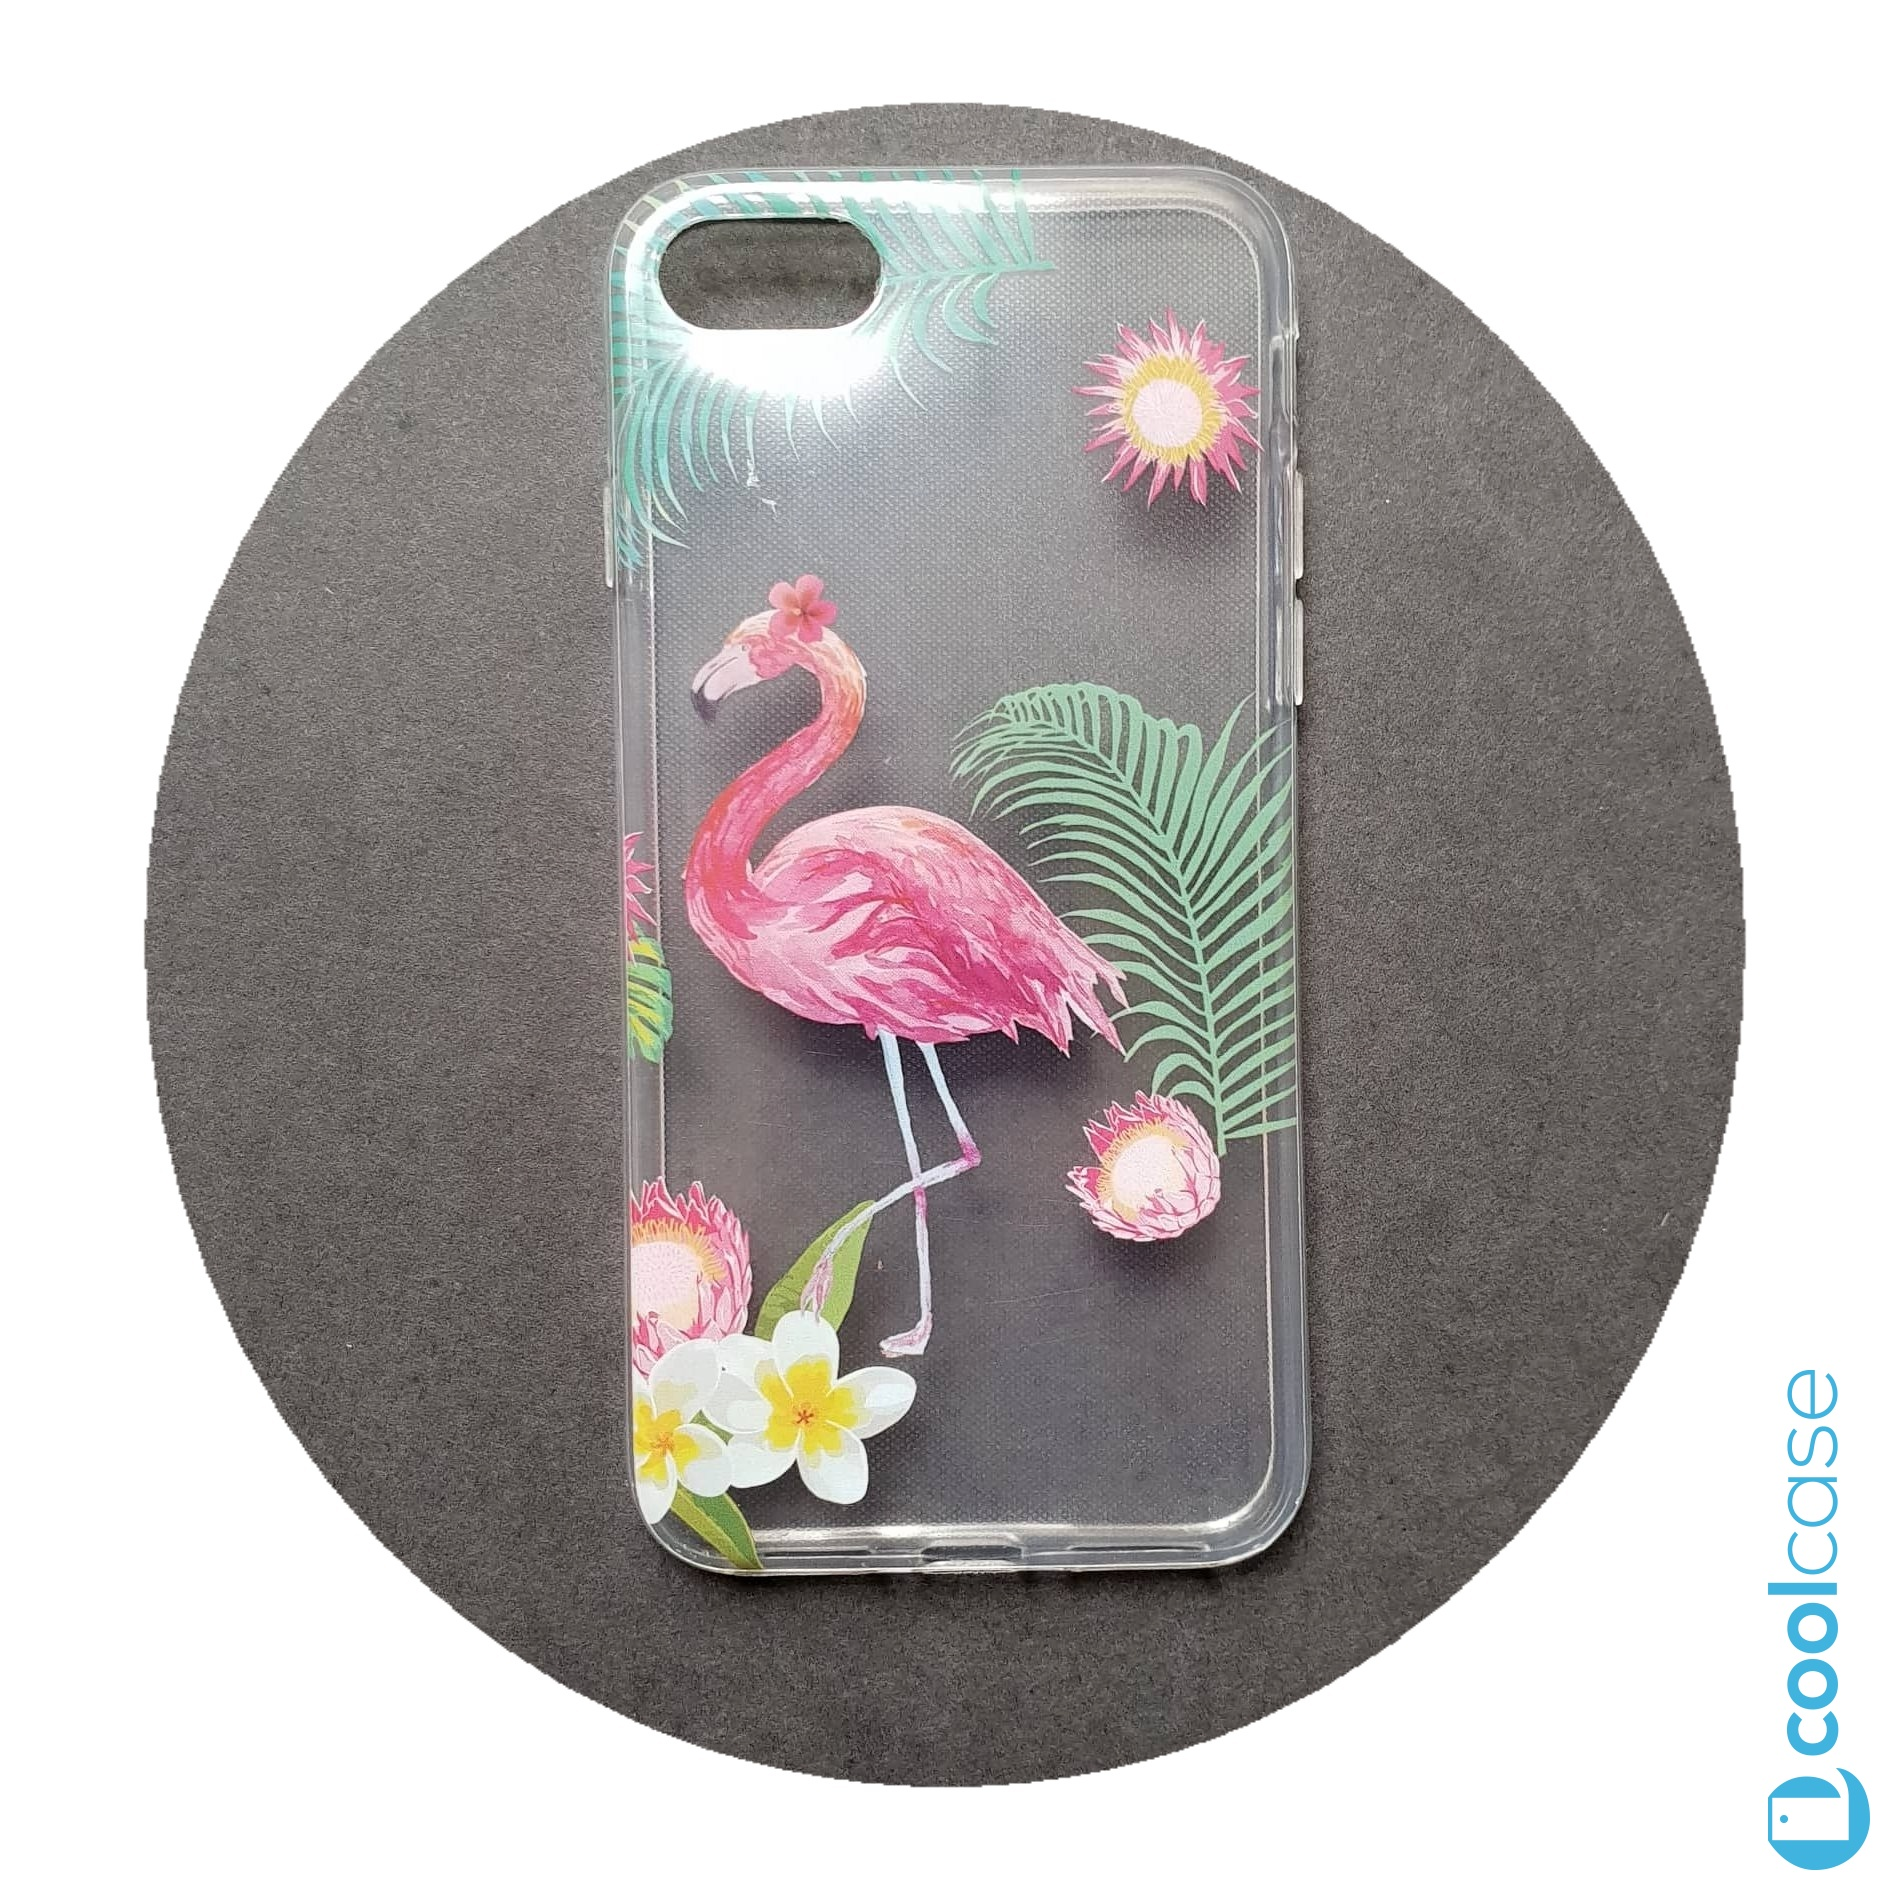 Silikonové pouzdro Forcell Summer FLAMINGO - Plameňák na mobil Apple iPhone 7 / 8 čiré